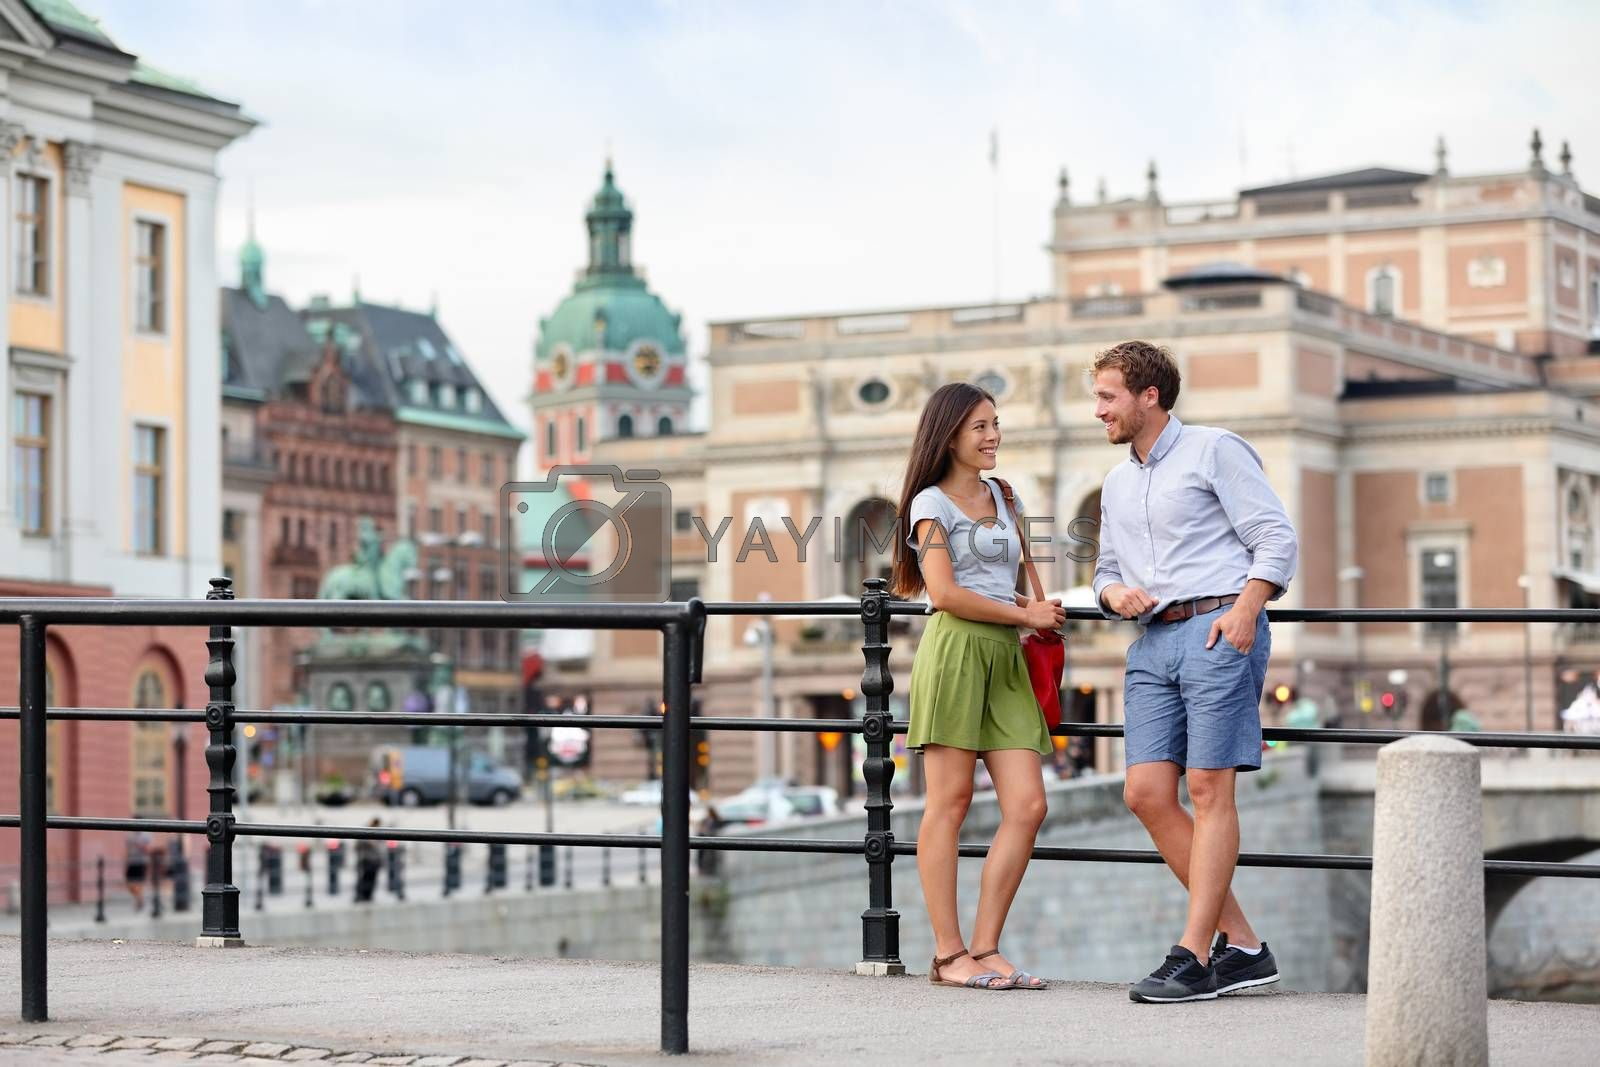 Urban people lifestyle - young couple in Stockholm by Maridav